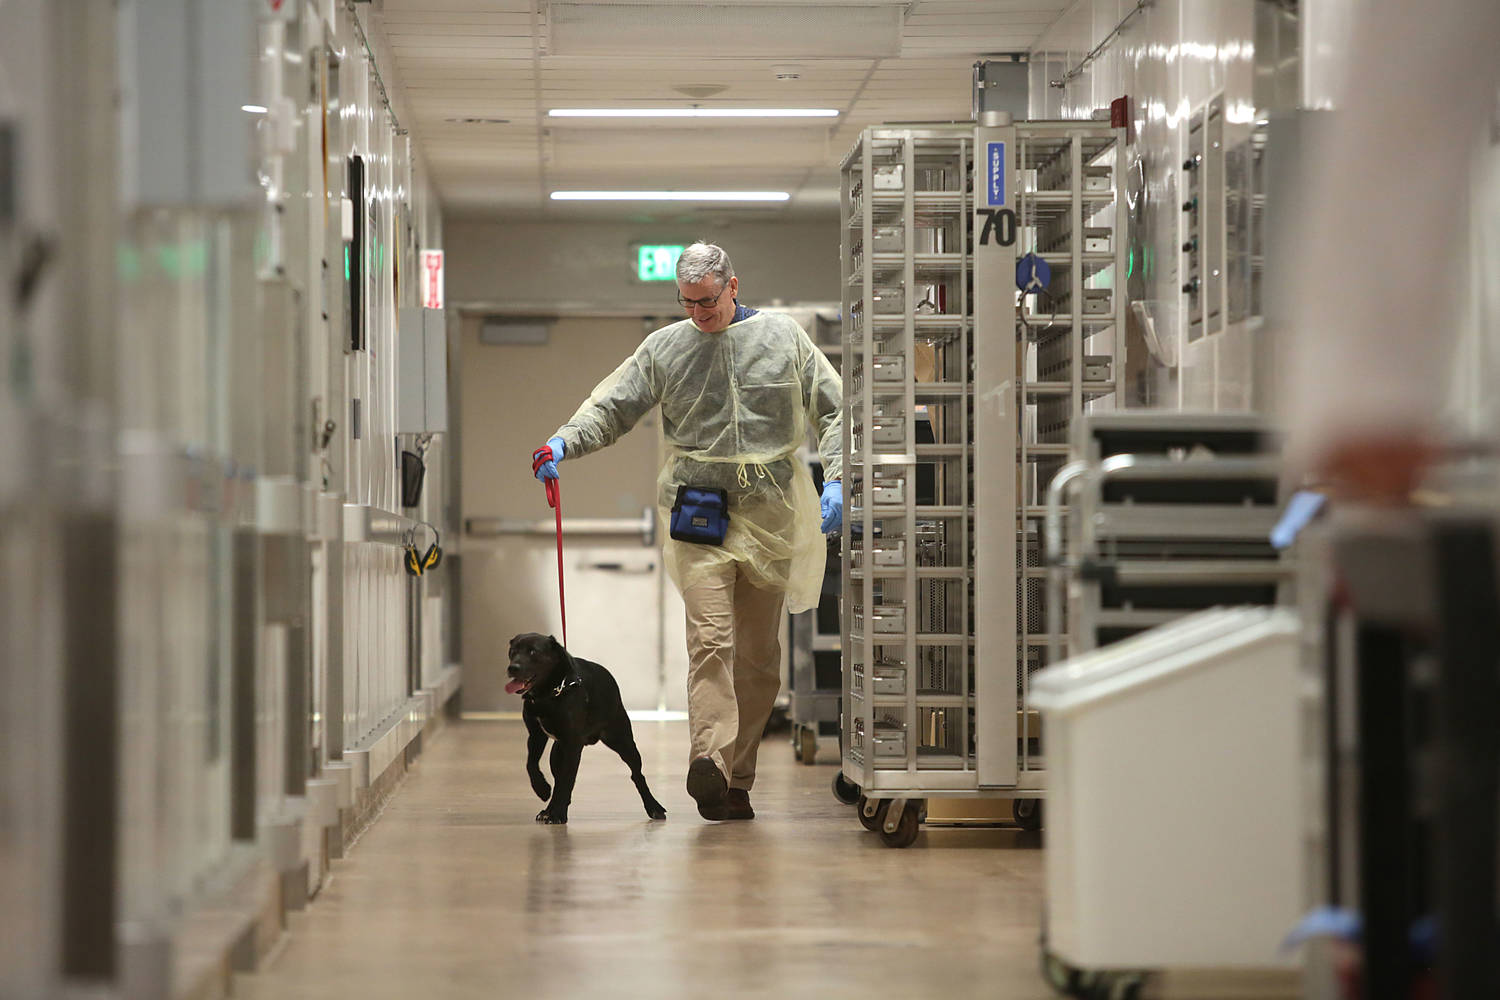 A man walks a dog down a long laboratory hallway.